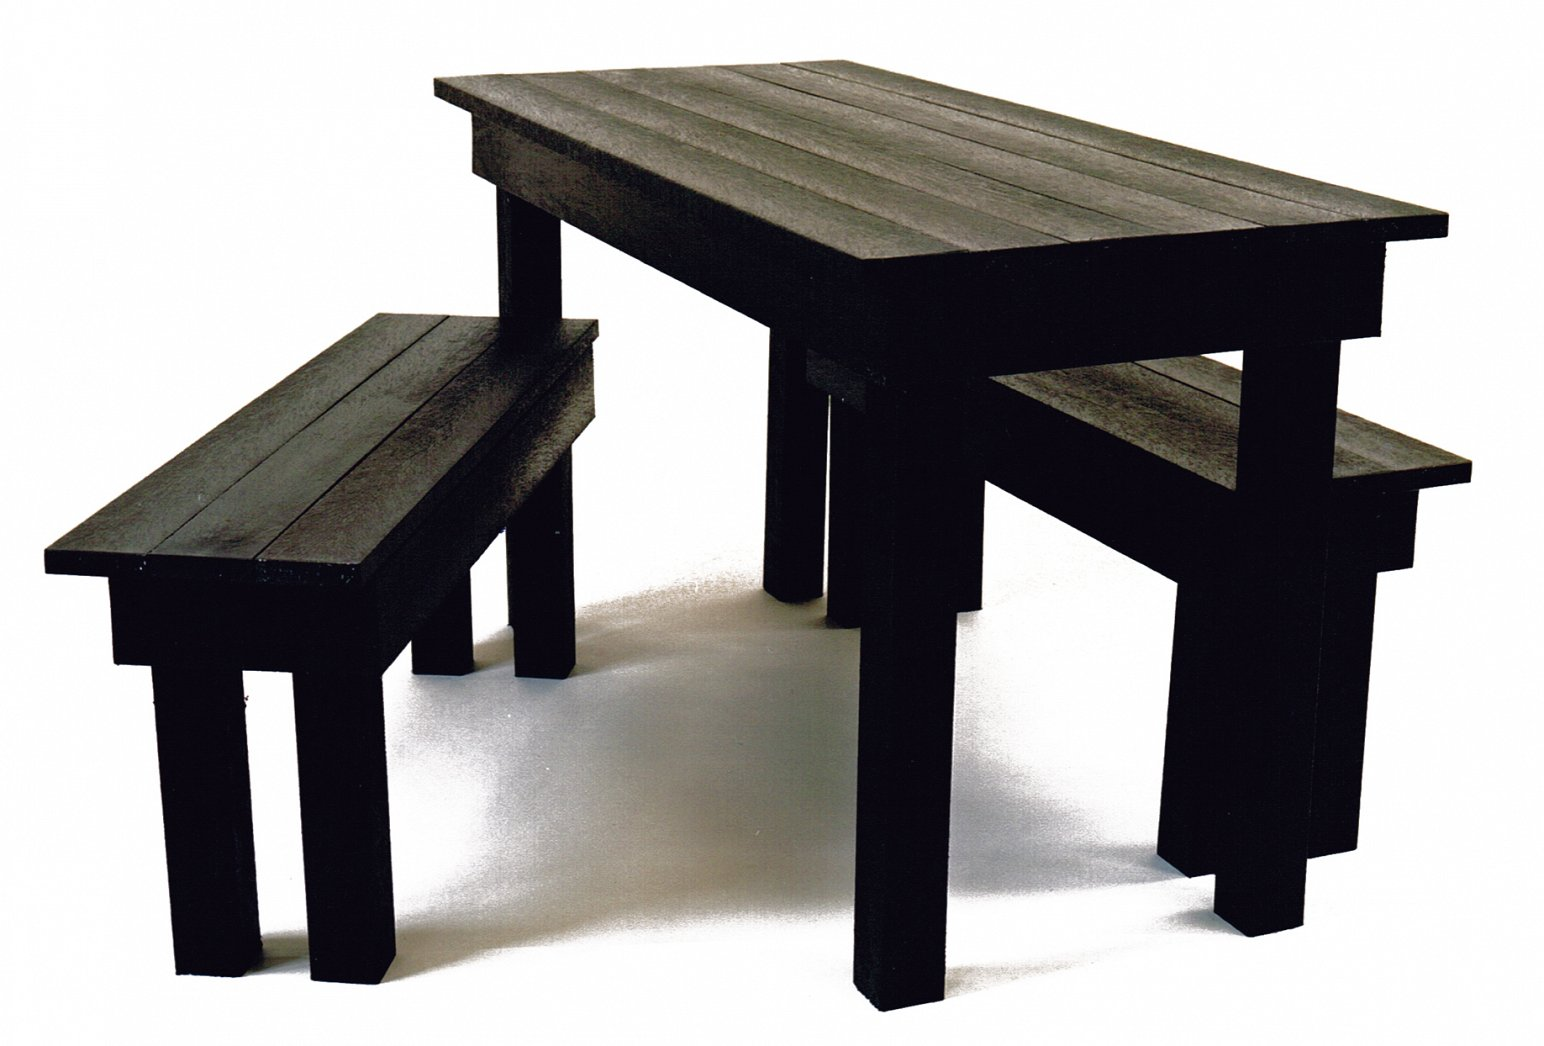 beer table set  sc 1 st  Ineke Hans & beertable set - Shop | Ineke Hans Collection